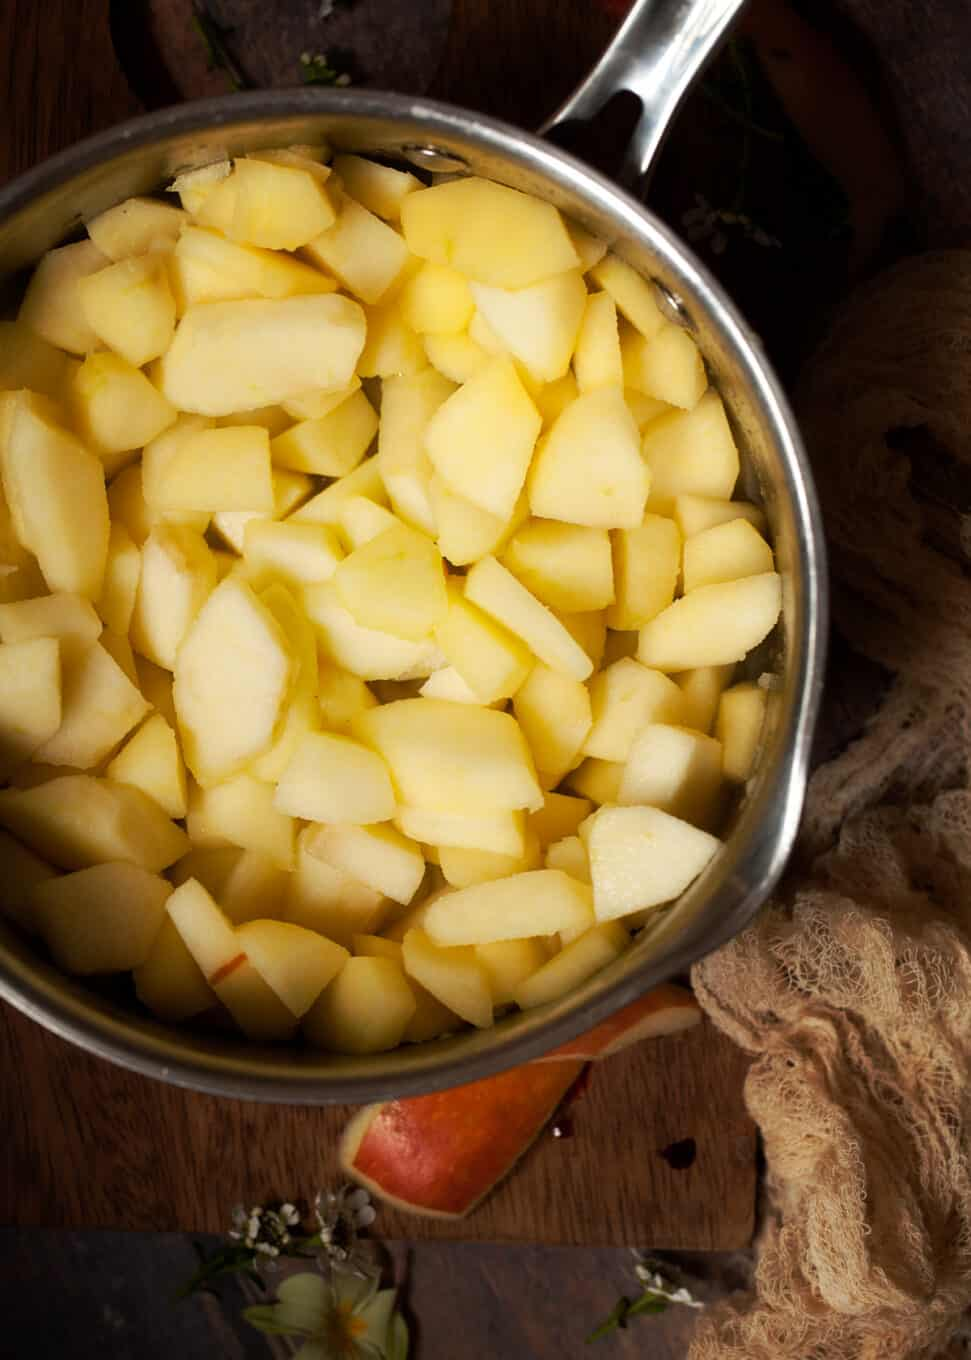 Sliced apples cooked in butter in a large pan